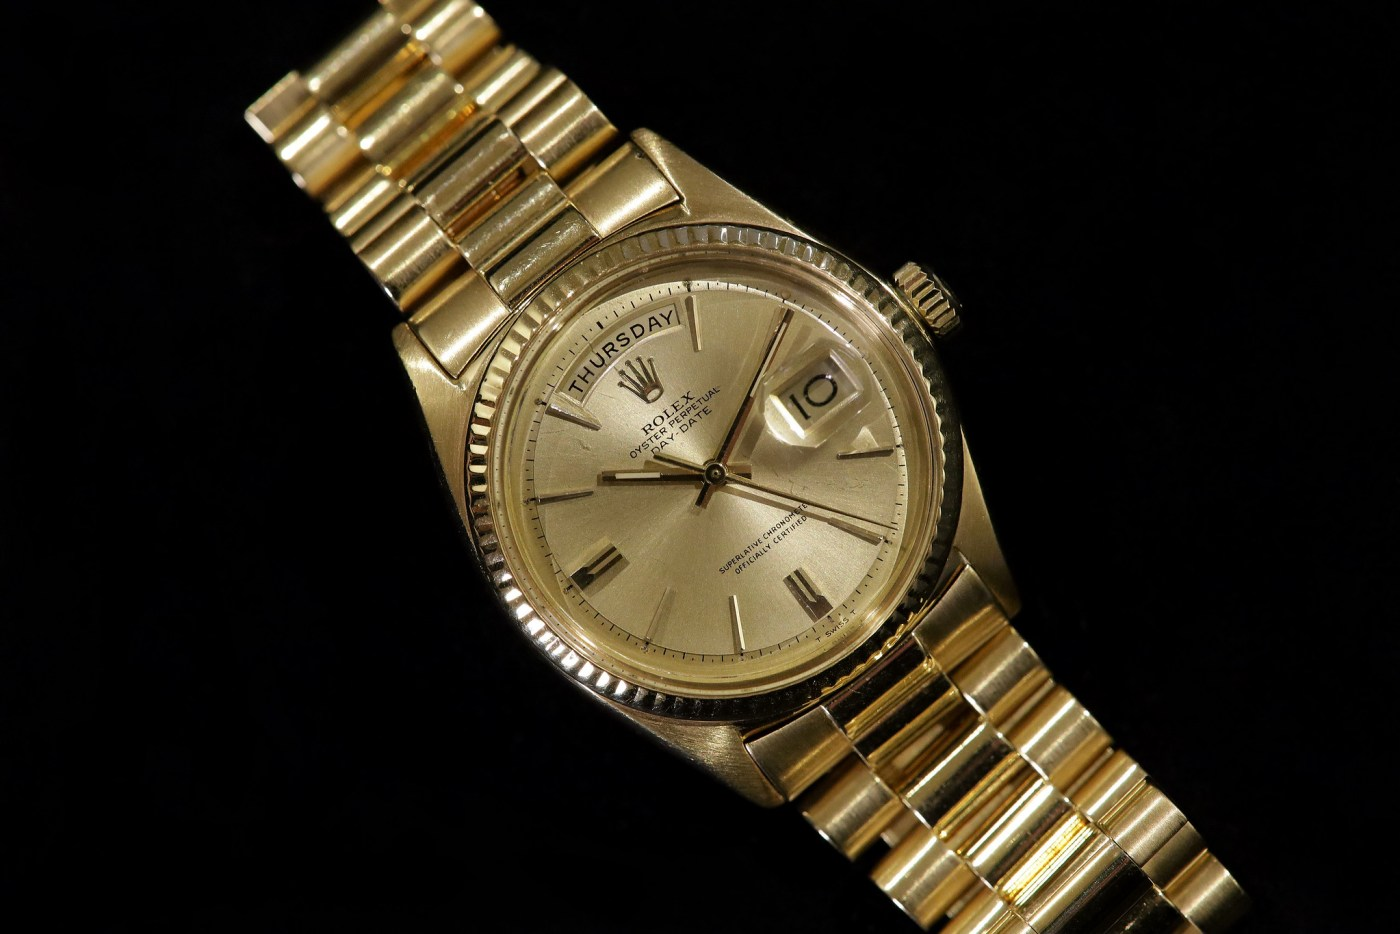 Jack Nicklaus 1967 Yellow Gold Rolex Day-Date Ref. 1803